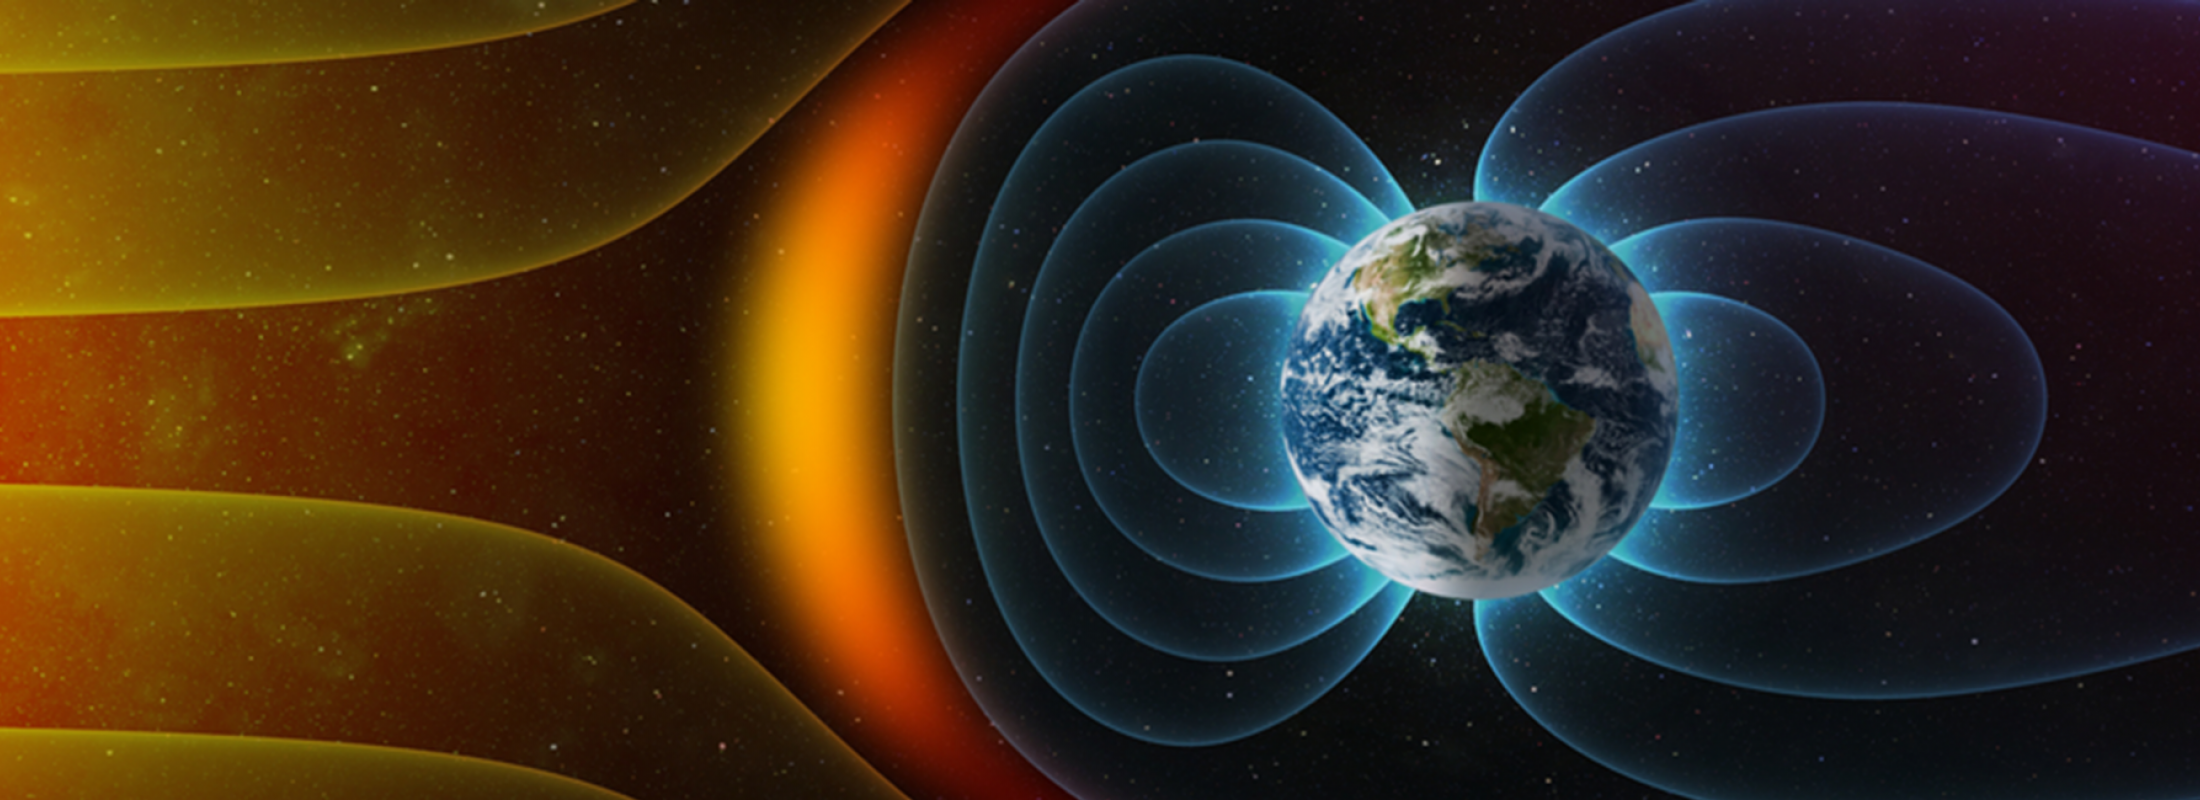 Image of earth and magnetic field